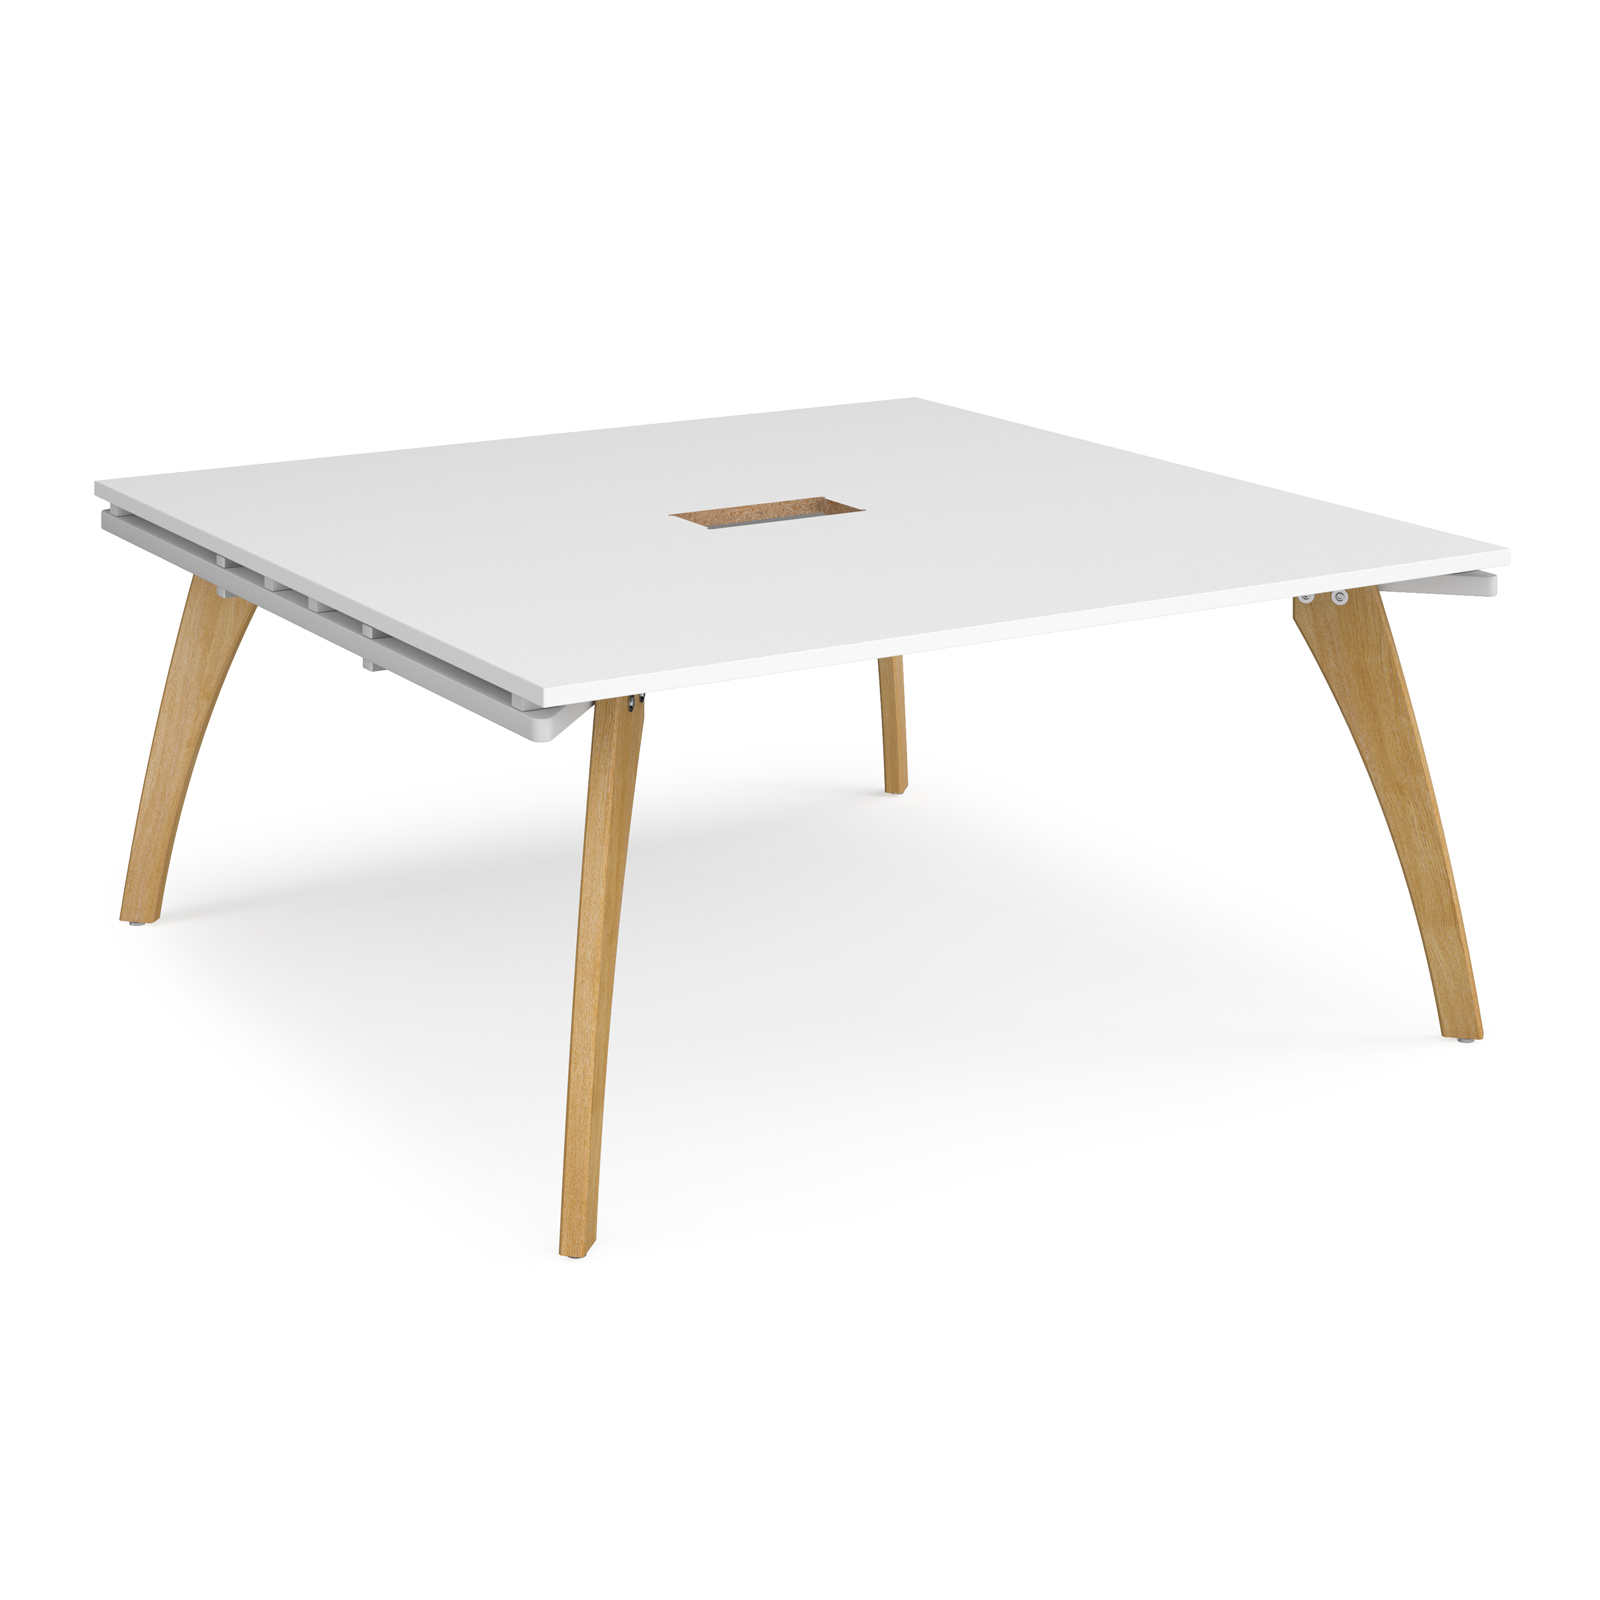 Fuze square boardroom table 1600mm x 1600mm with central cutout 272mm x 132mm - white frame, white top